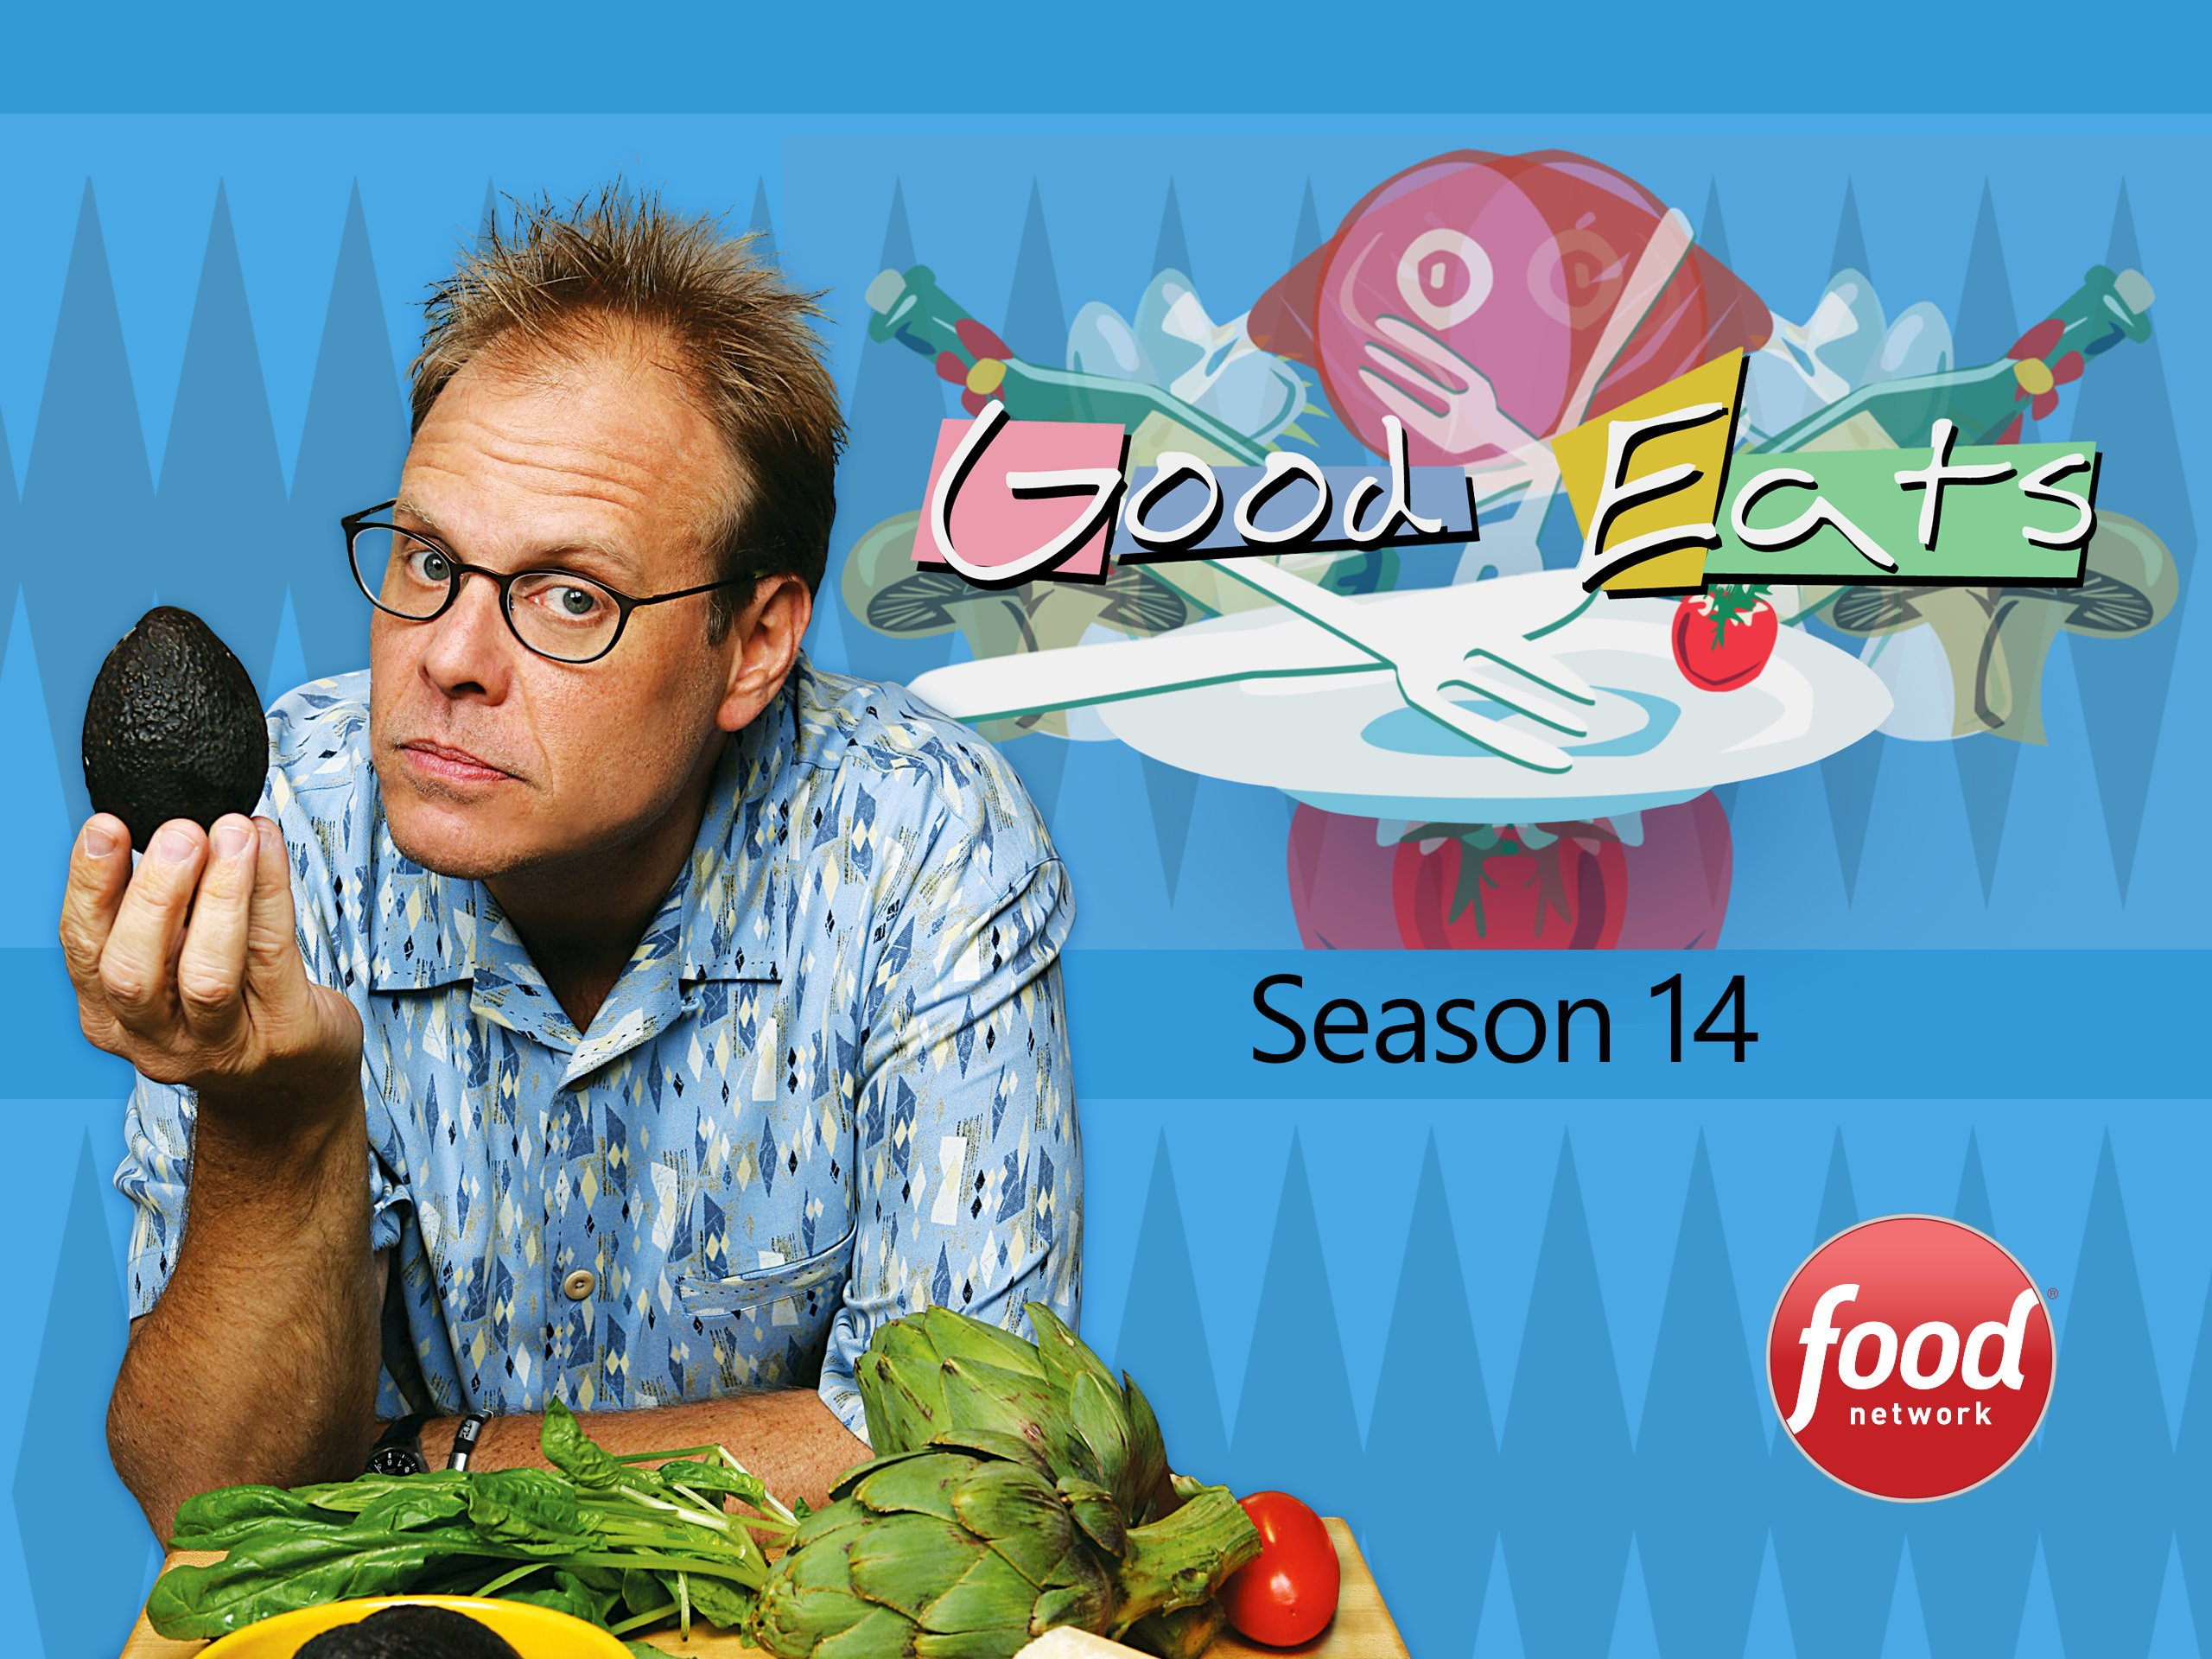 Amazon.com: Good Eats Season 14: Amazon Digital Services LLC